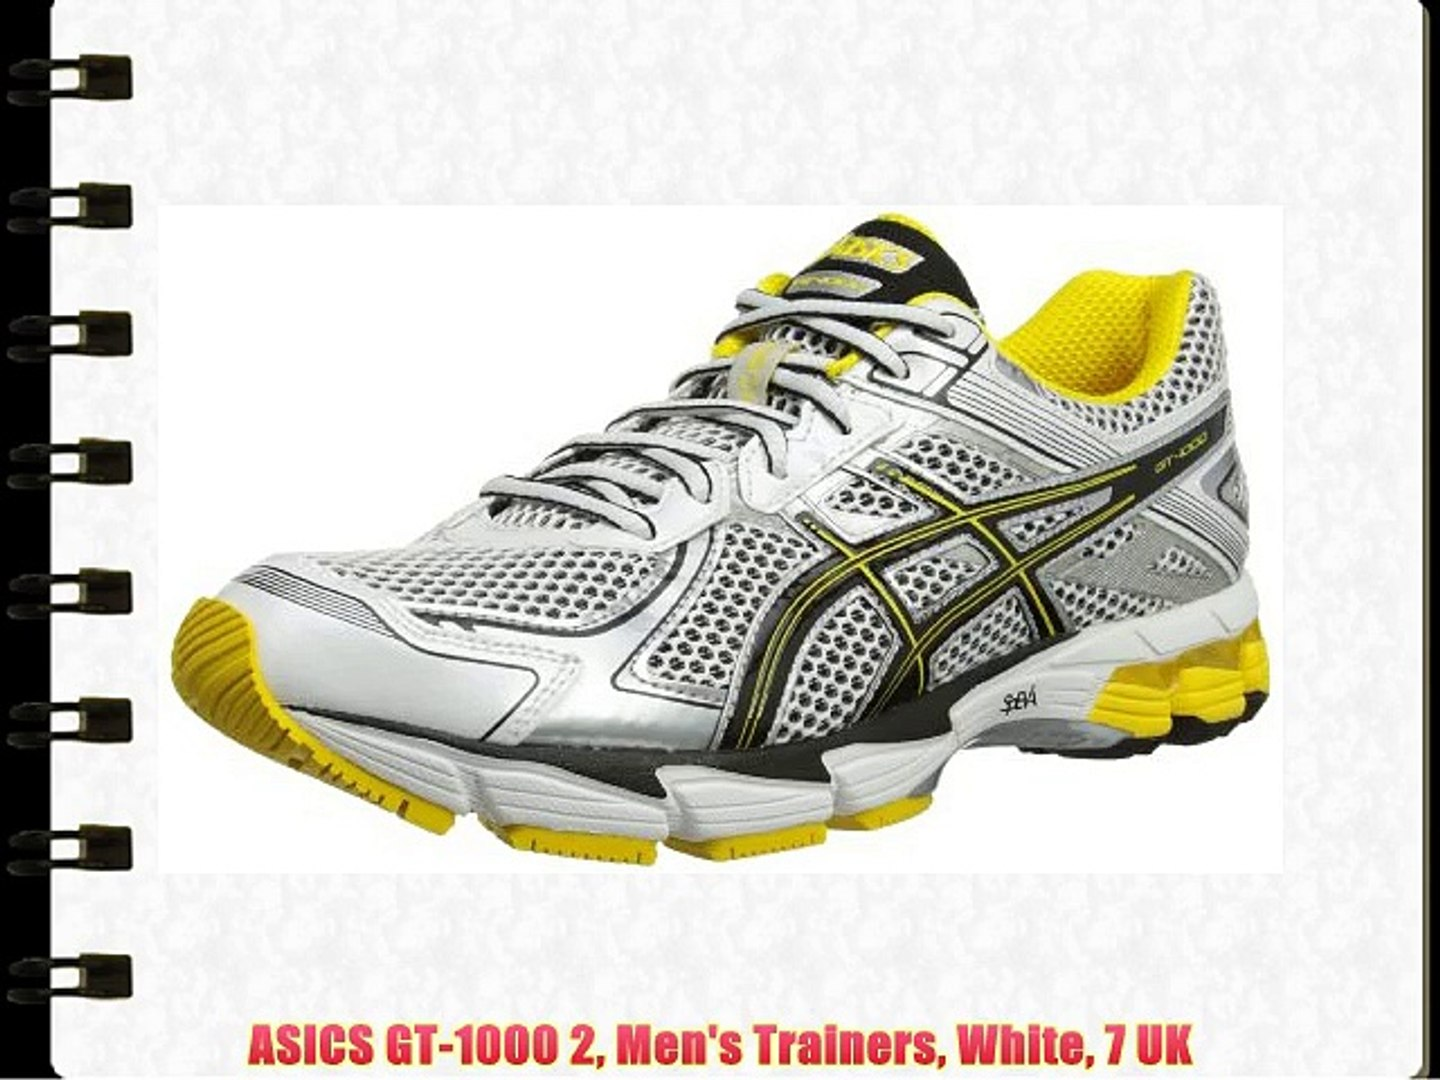 rencontrer d7f5a 7dc9c ASICS GT-1000 2 Men's Trainers White 7 UK